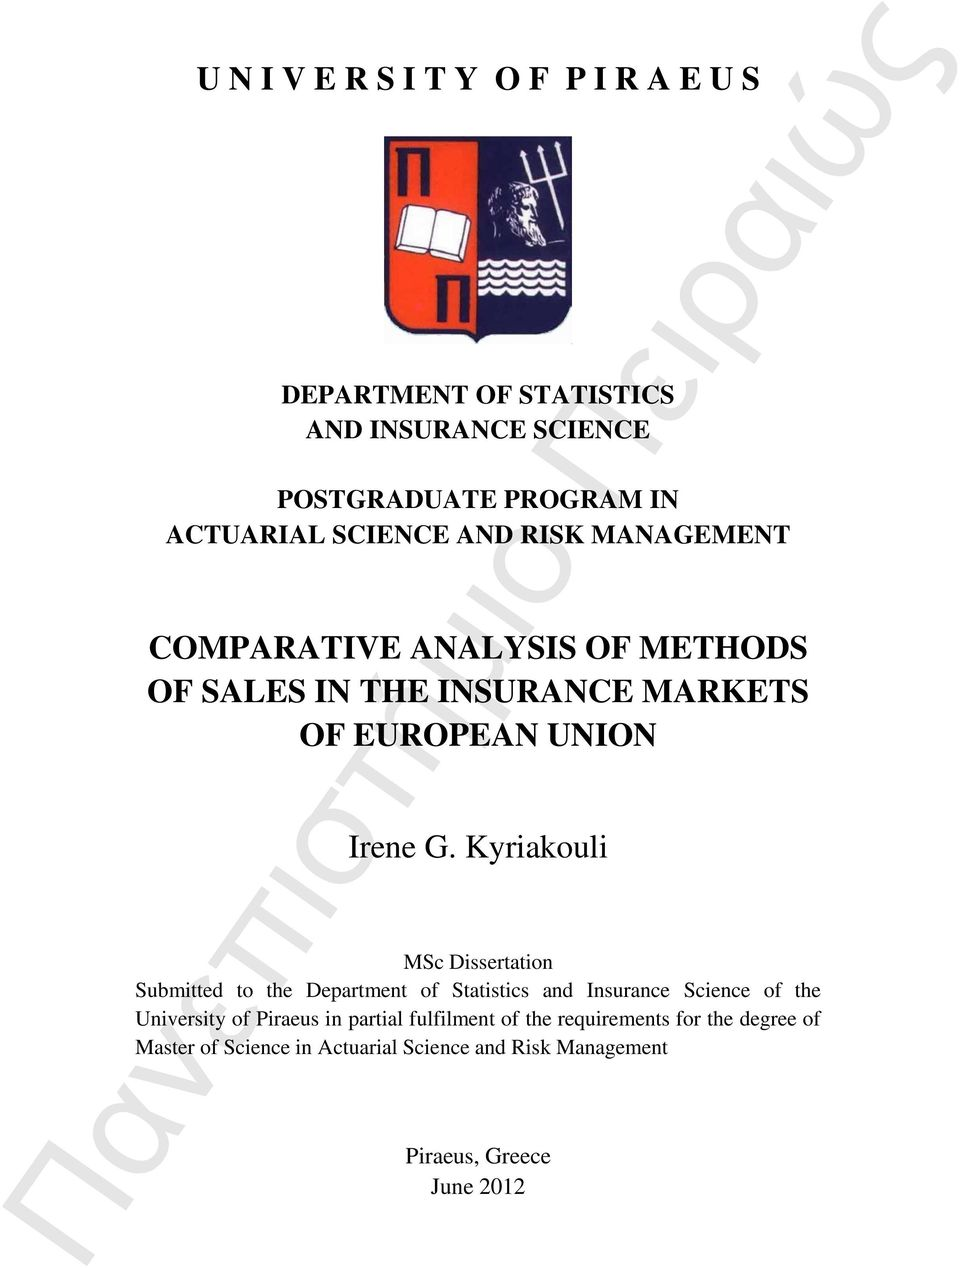 Kyriakouli MSc Dissertation Submitted to the Department of Statistics and Insurance Science of the University of Piraeus in